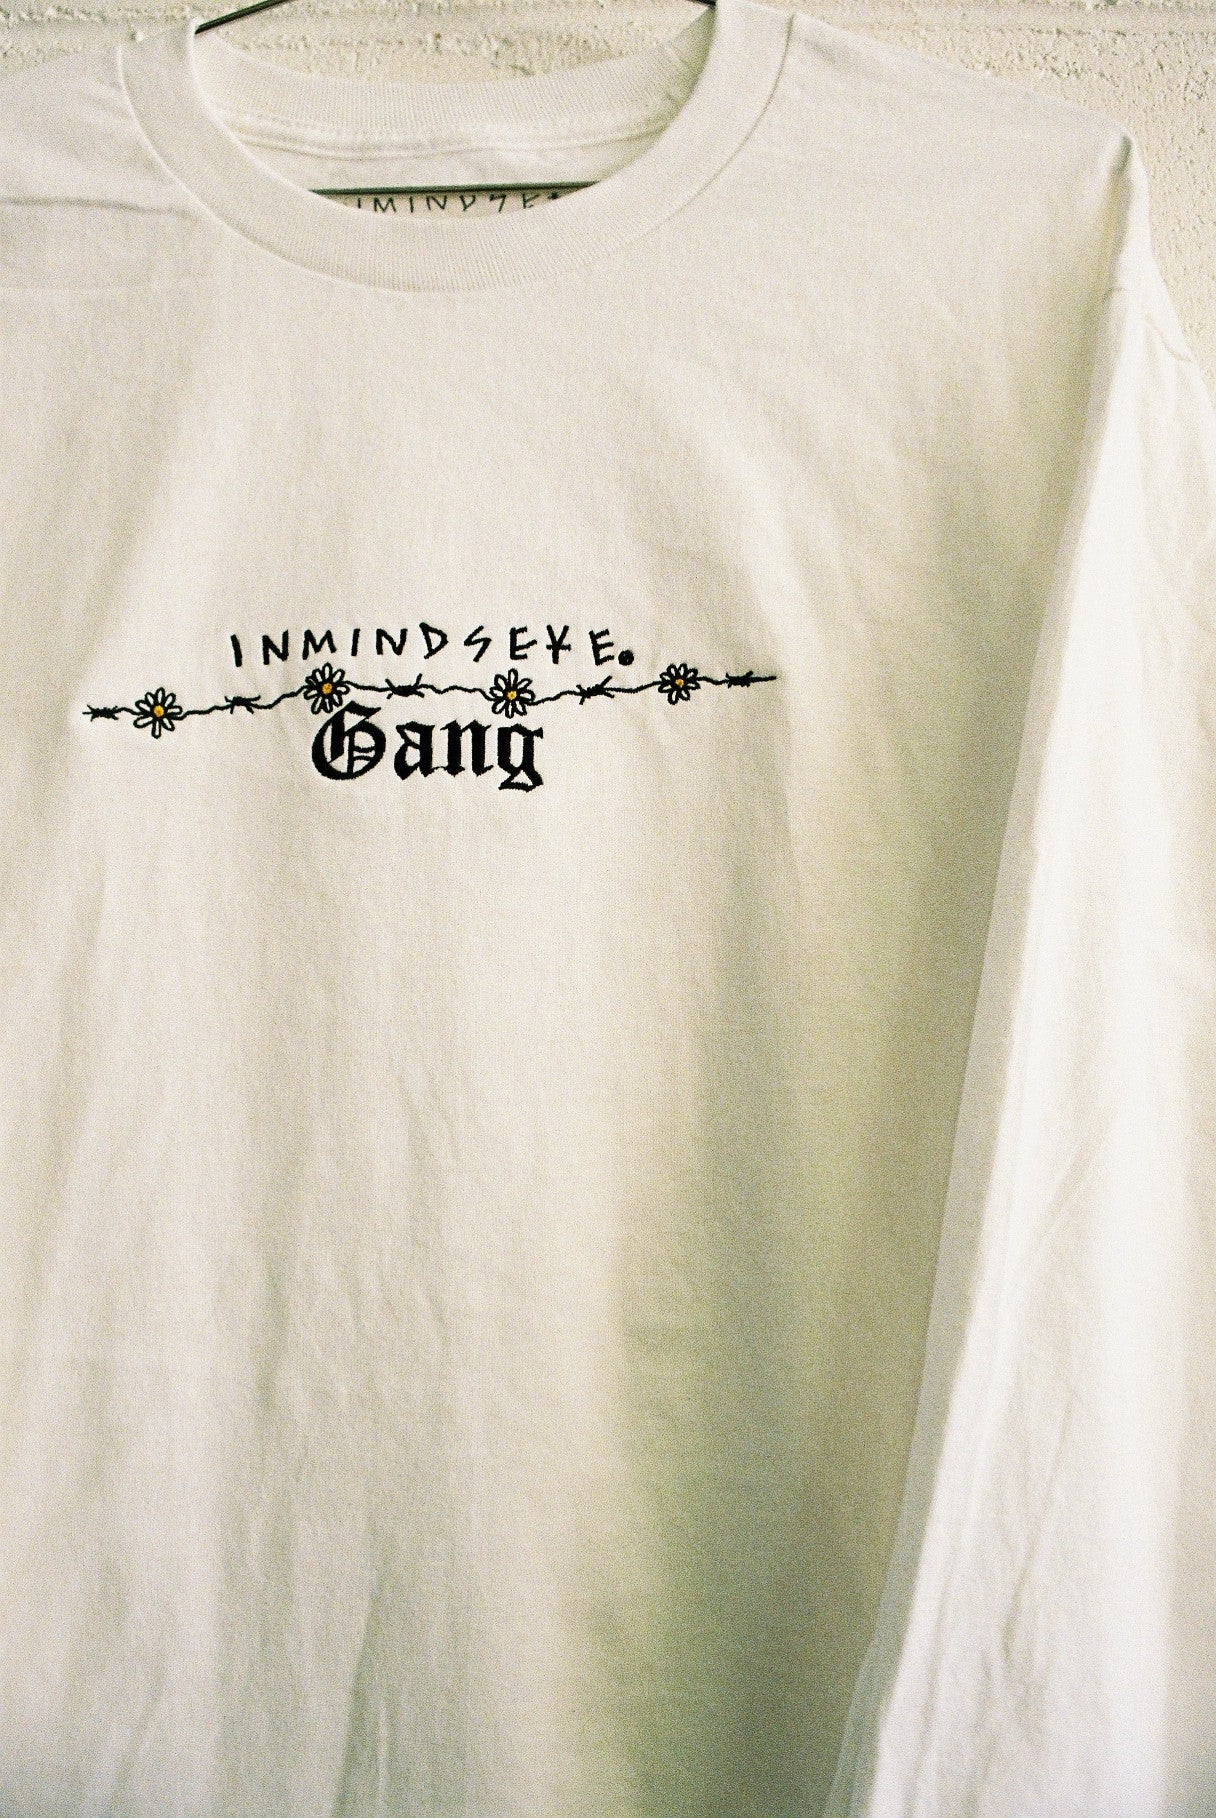 CHAIN GANG L/S tee / white